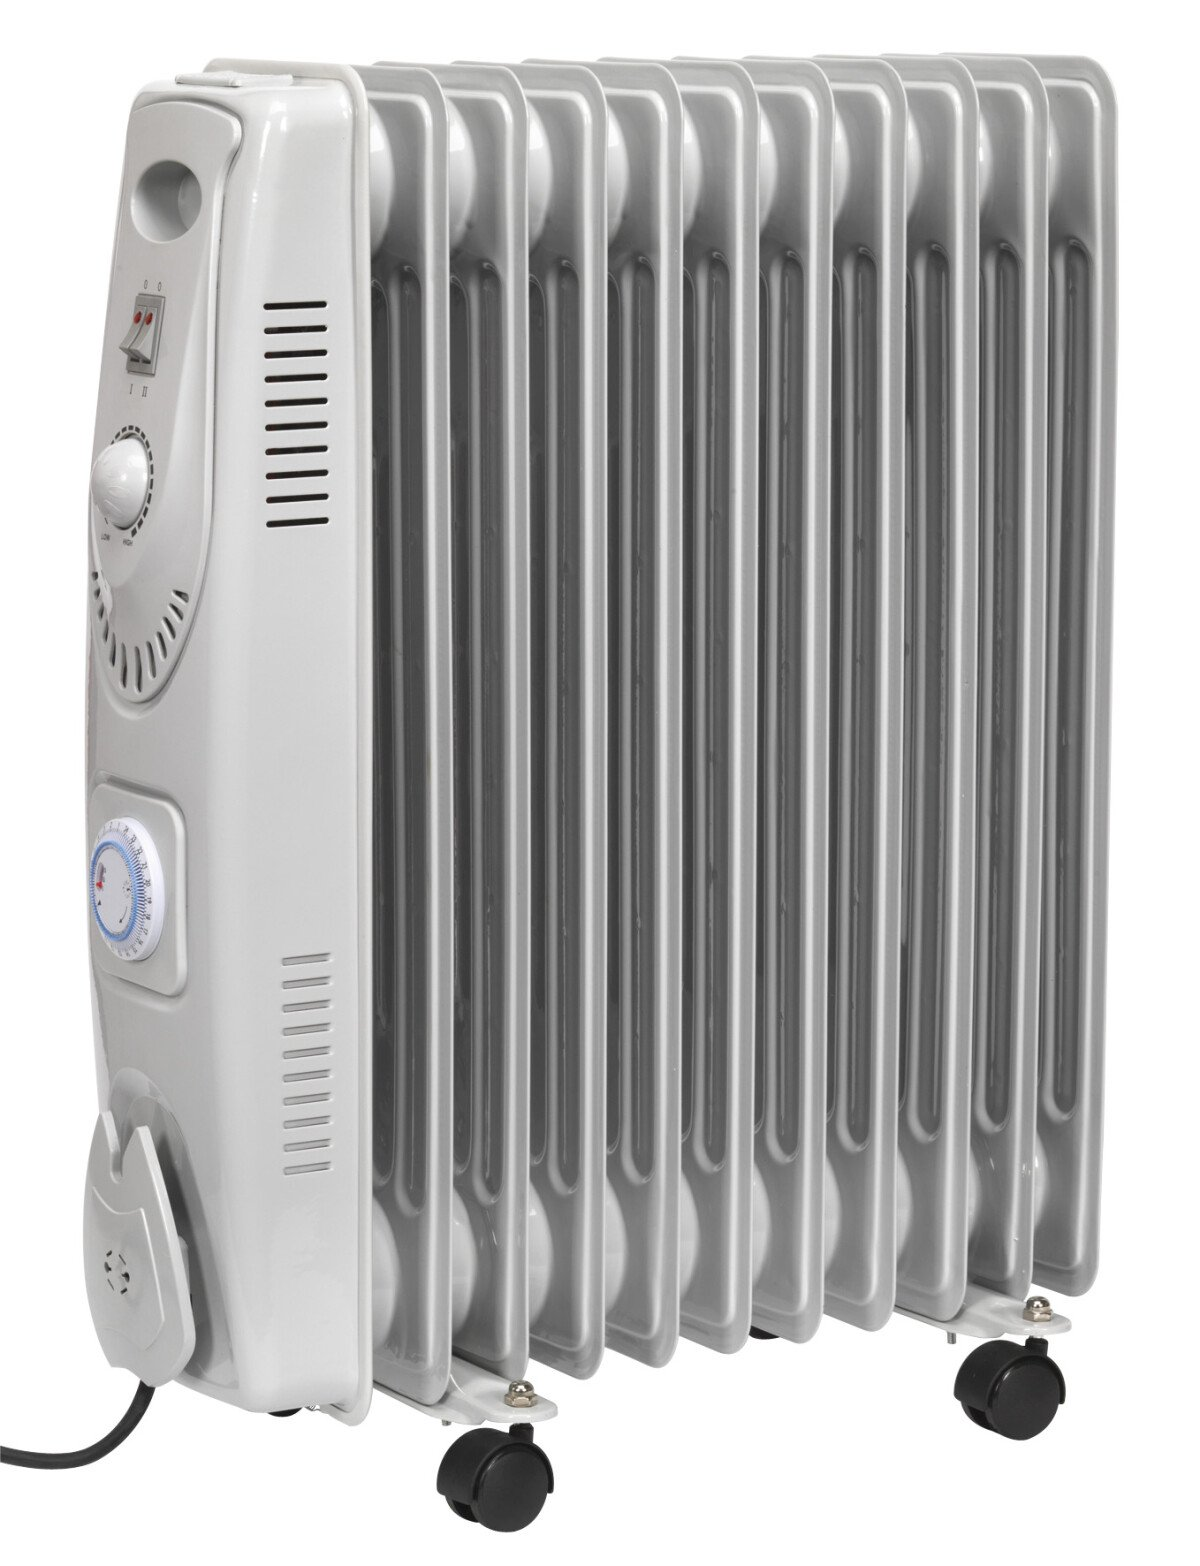 Sealey RD2500T Oil Filled Radiator 2500W/230V 11 Element with Timer